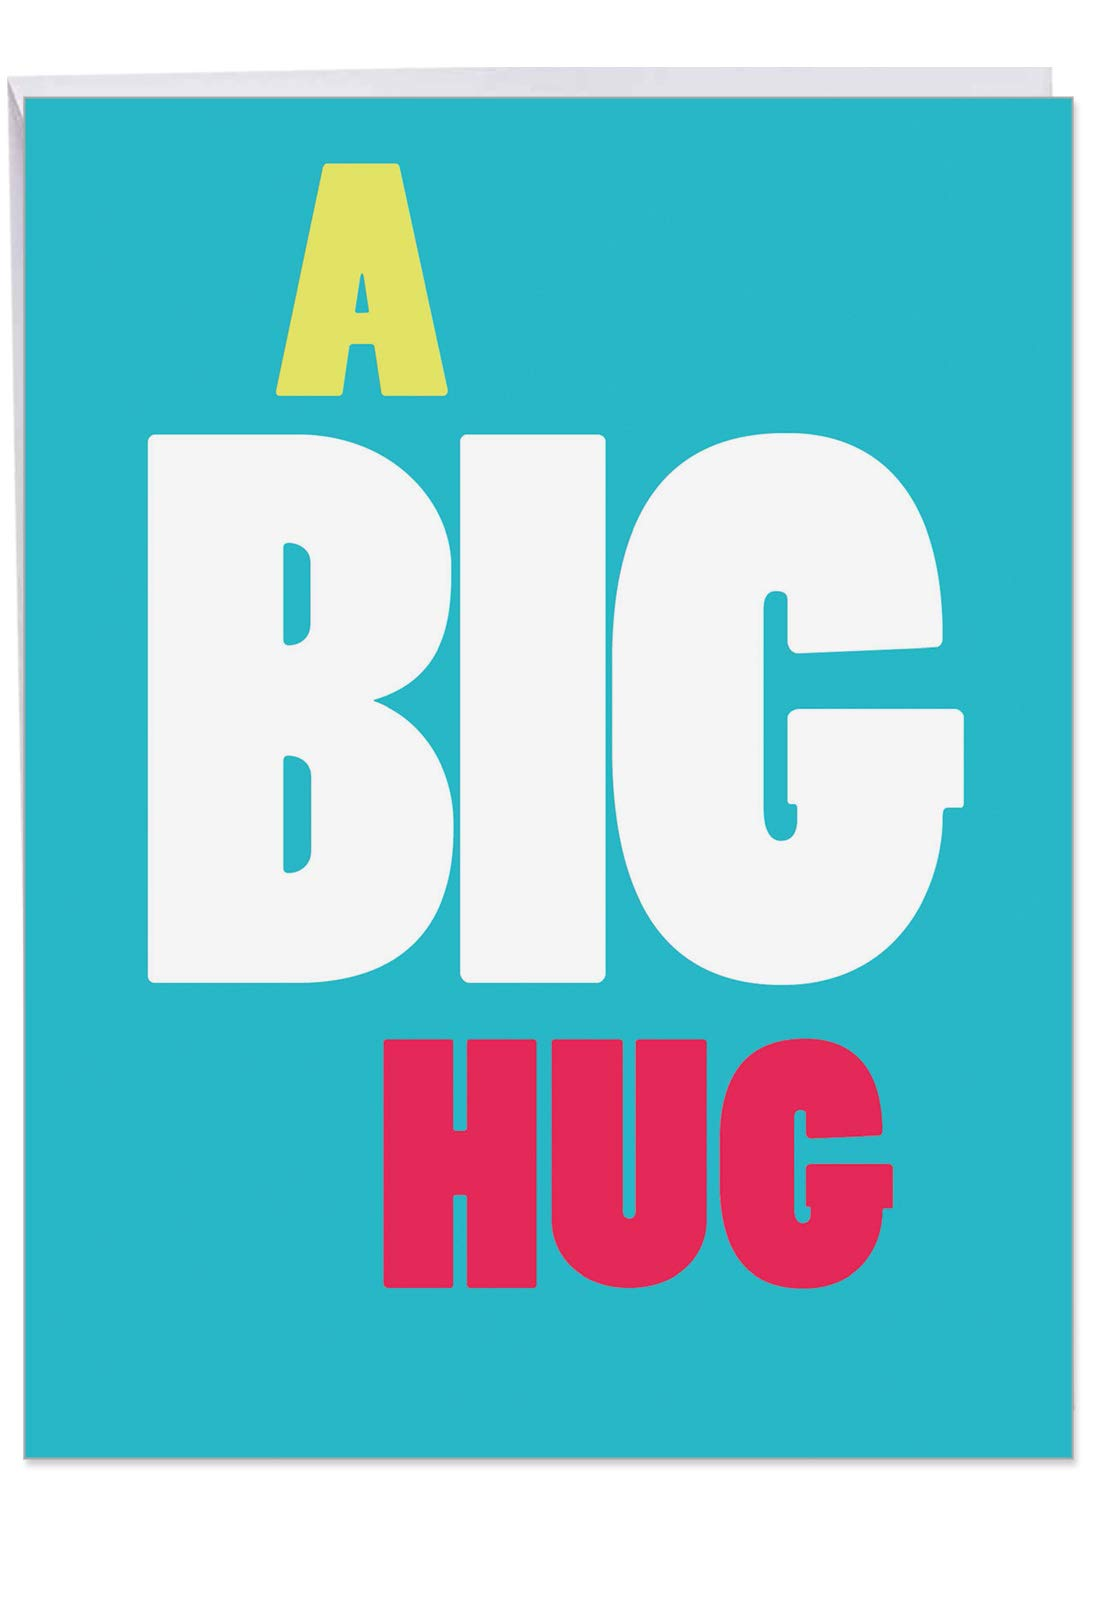 Big Hug - All Occasion Blank Greeting Card with Envelope (Extra Large 8.5 x 11 inch) - Big, Bold and Colorful All-Occasion Blank Card - Share the Love Stationery Notecard J9652